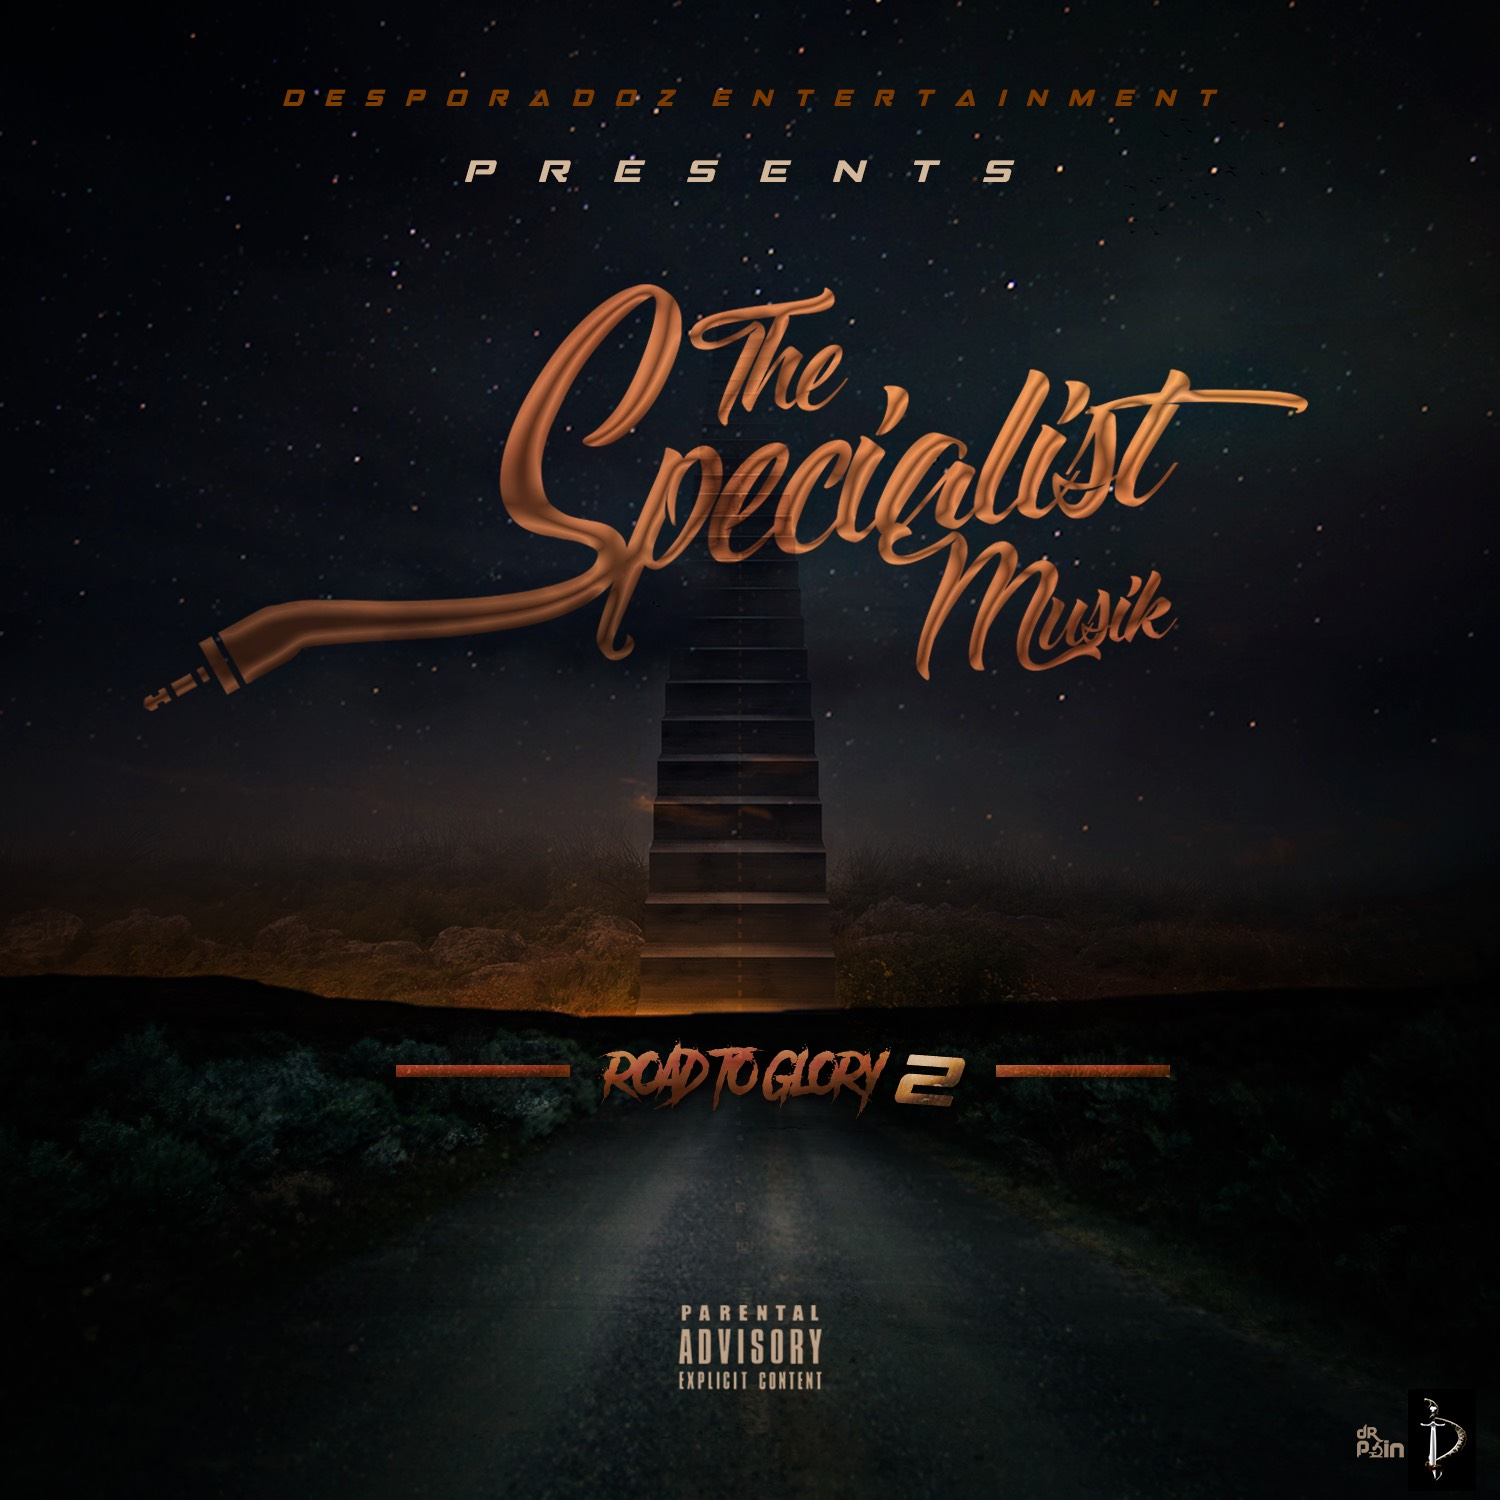 The Specialist Musik's latest 9-song EP, Road To Glory 2